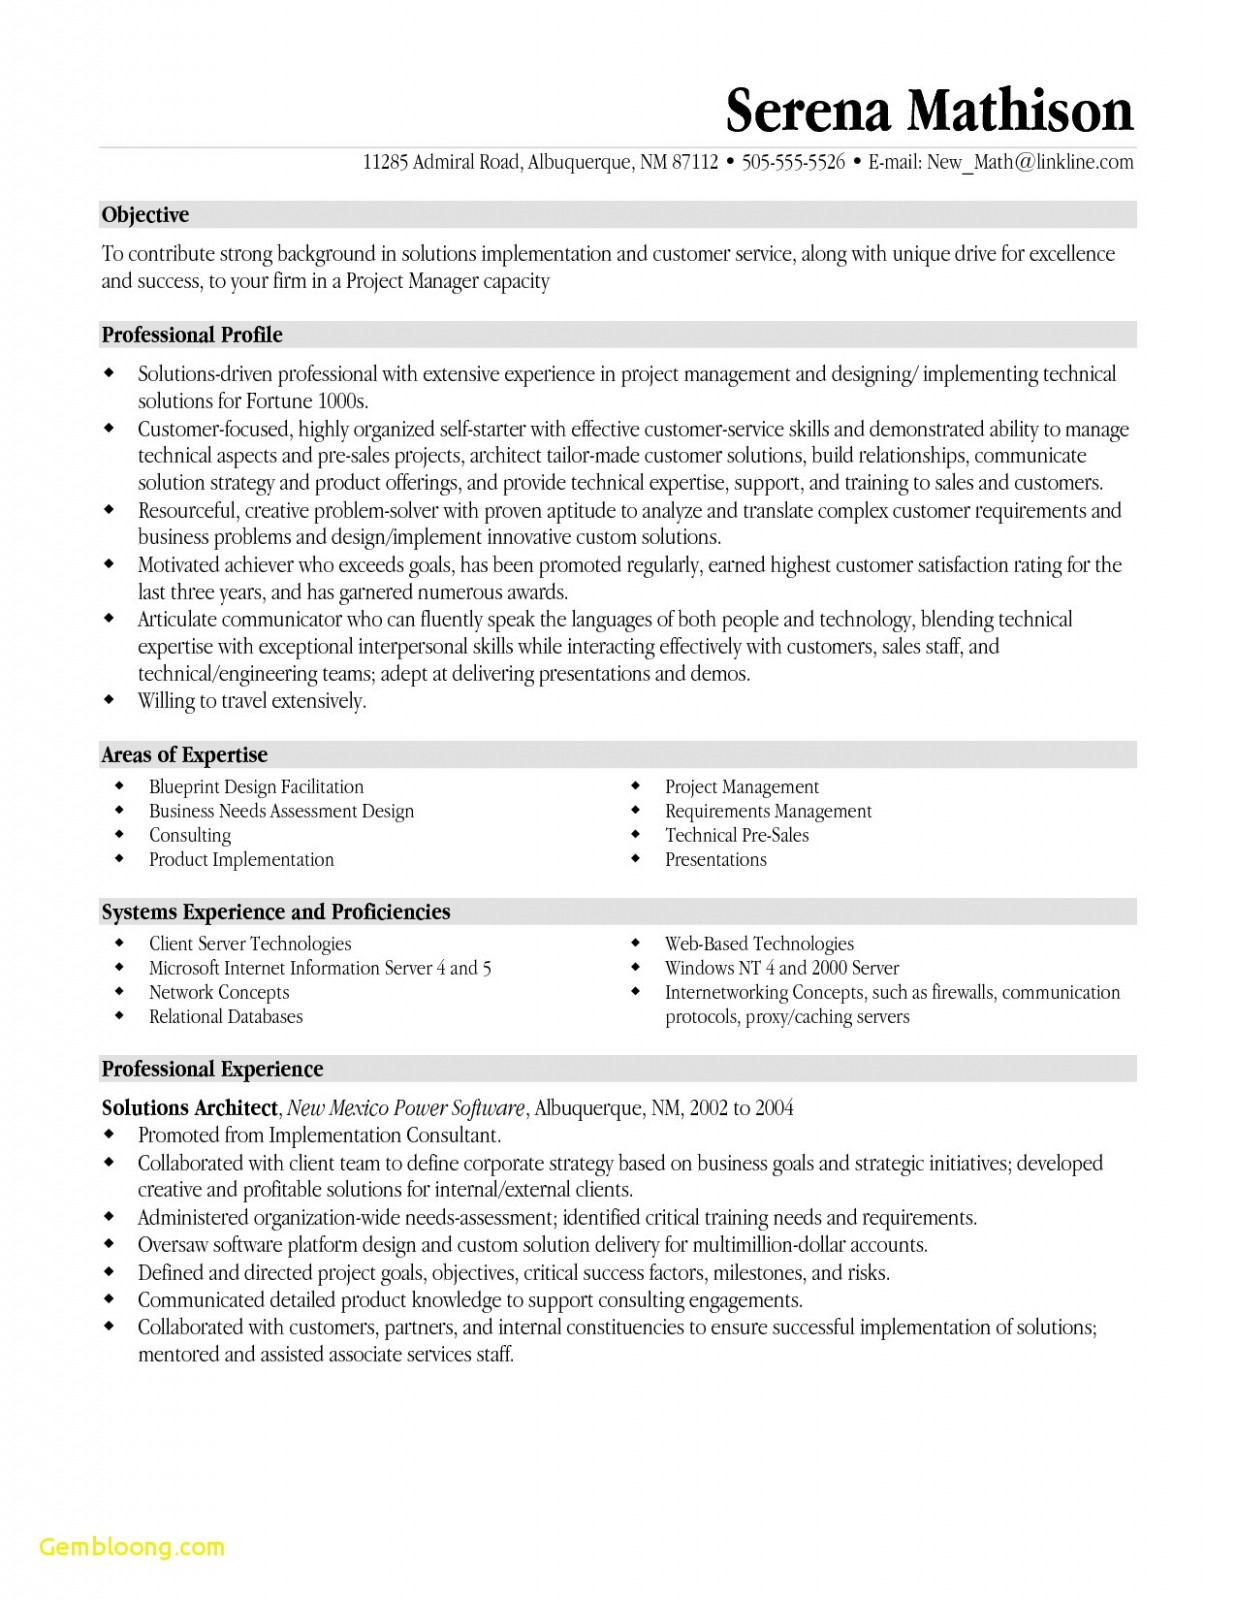 Medical Office Manager Resume Samples - 25 Medical Fice Manager Resume Sample